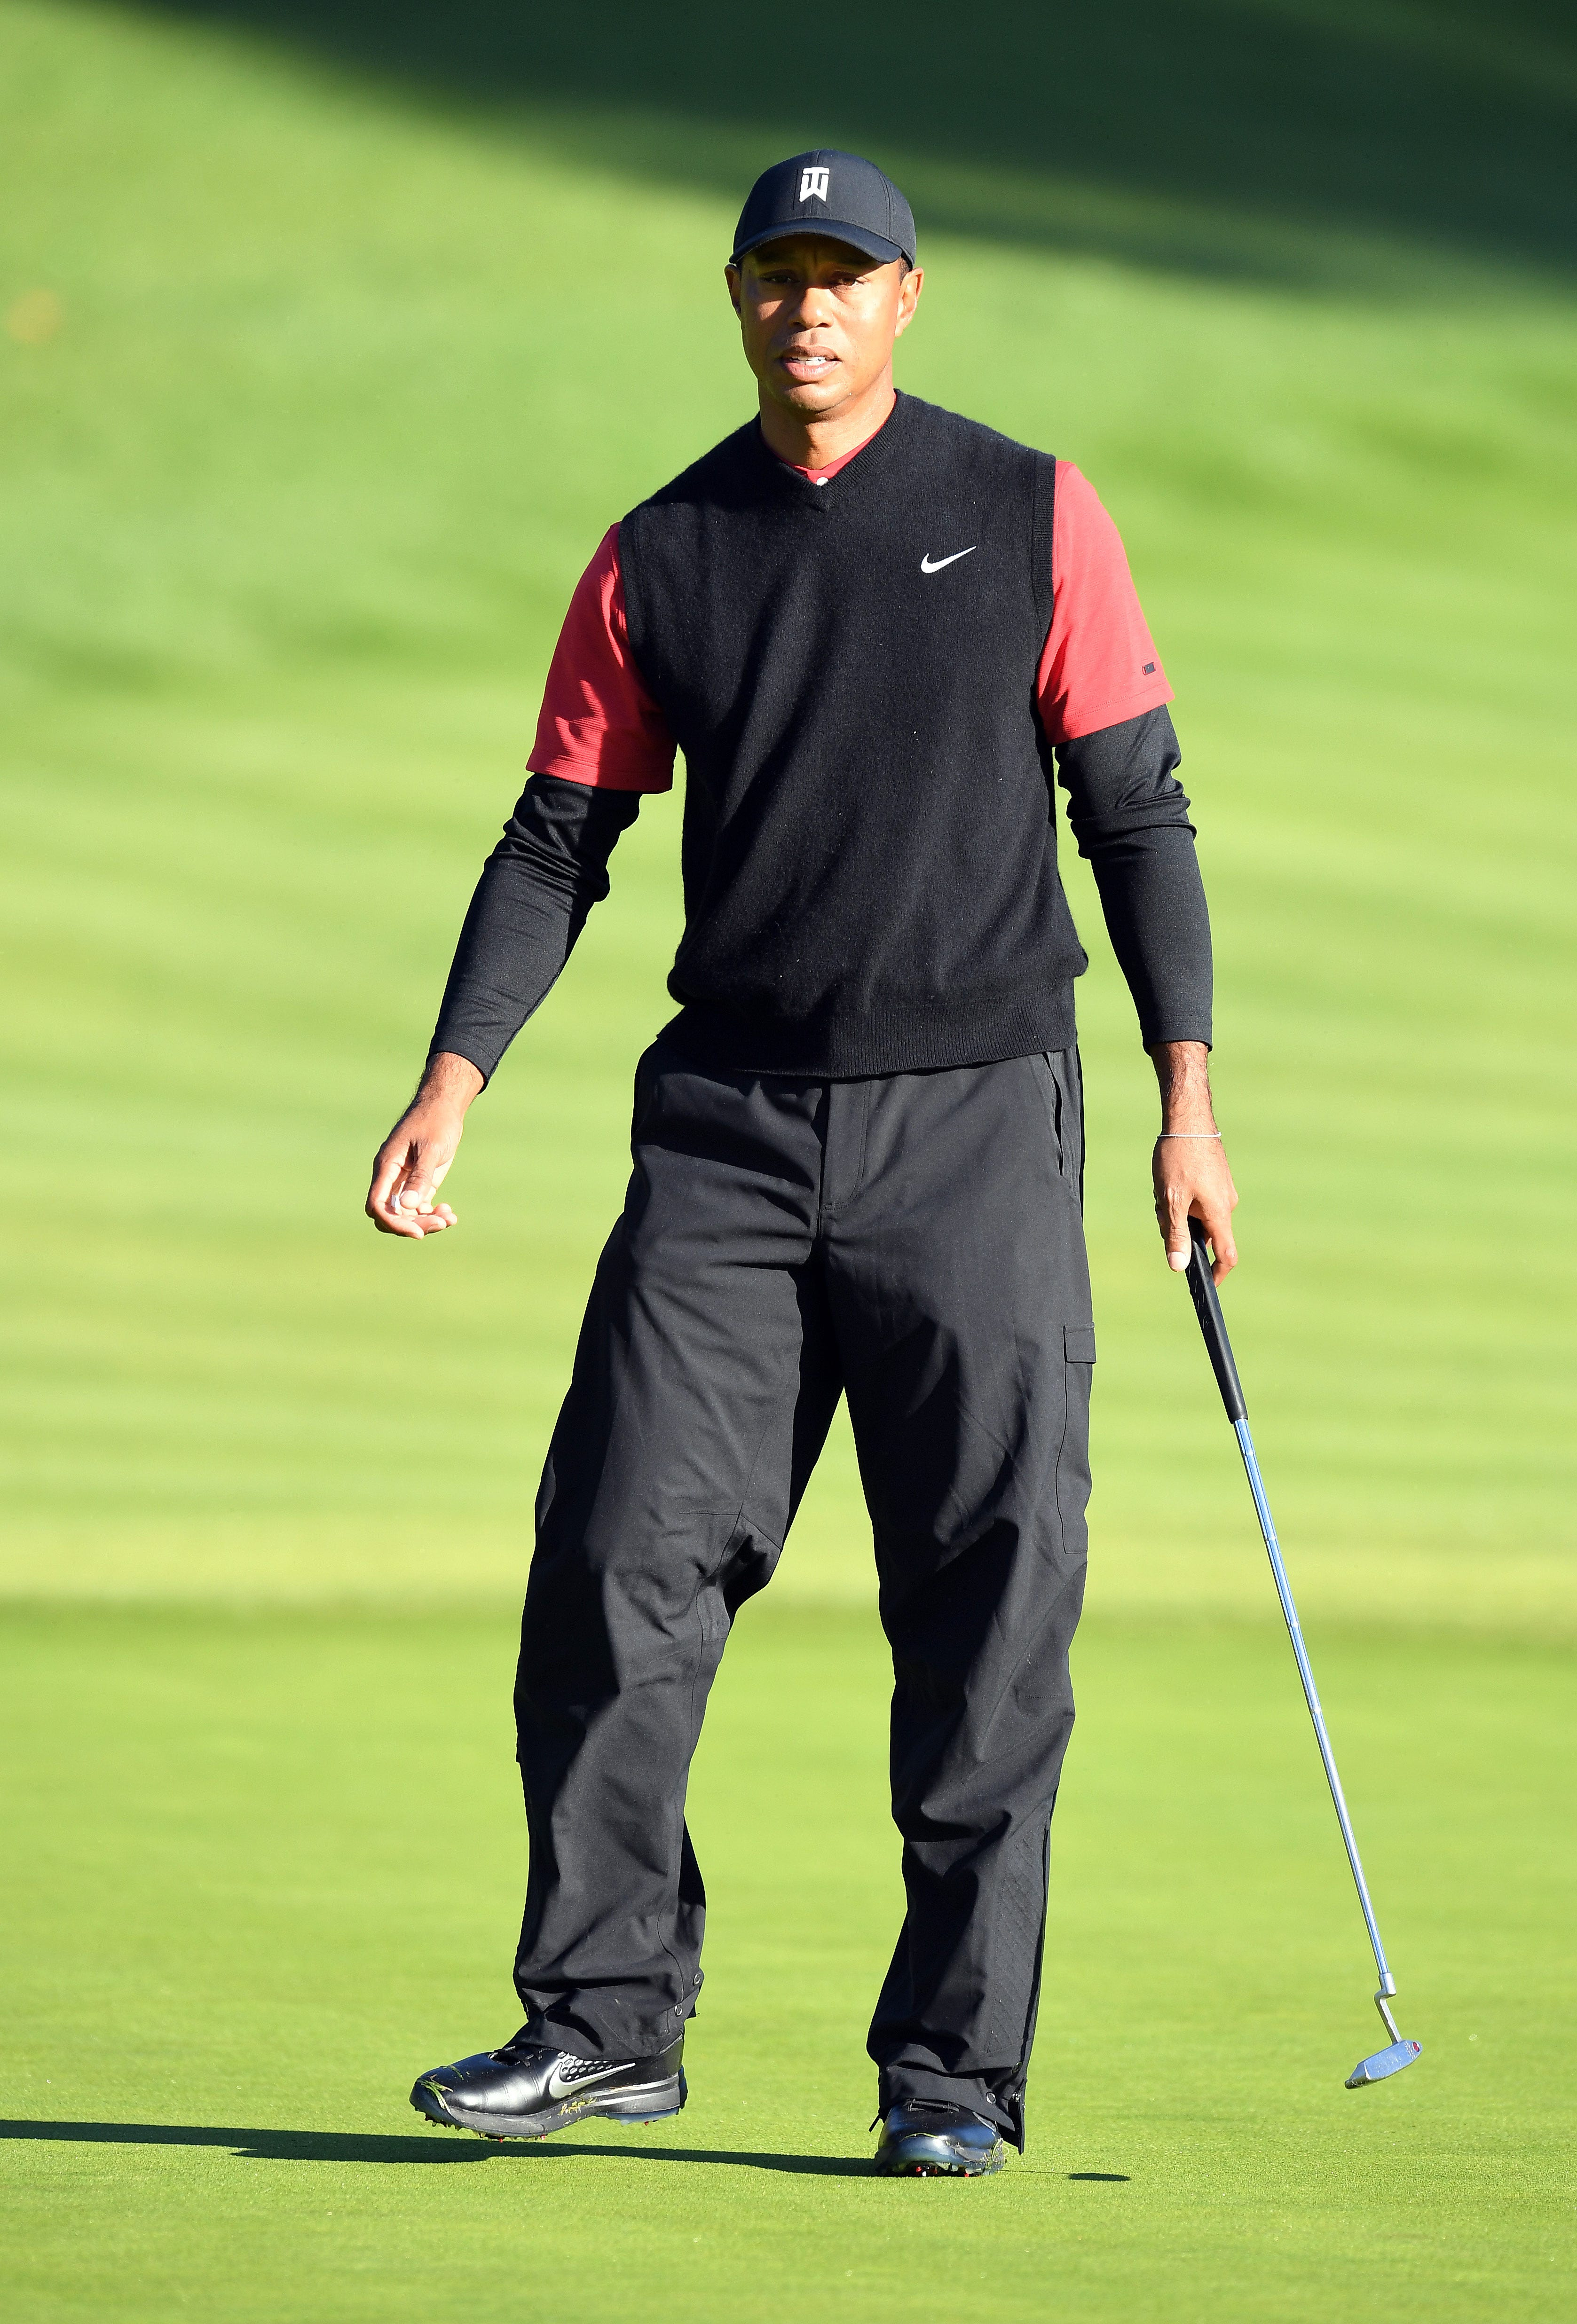 Tiger Woods puts on a show at Riviera before cold temperatures, delays take their toll